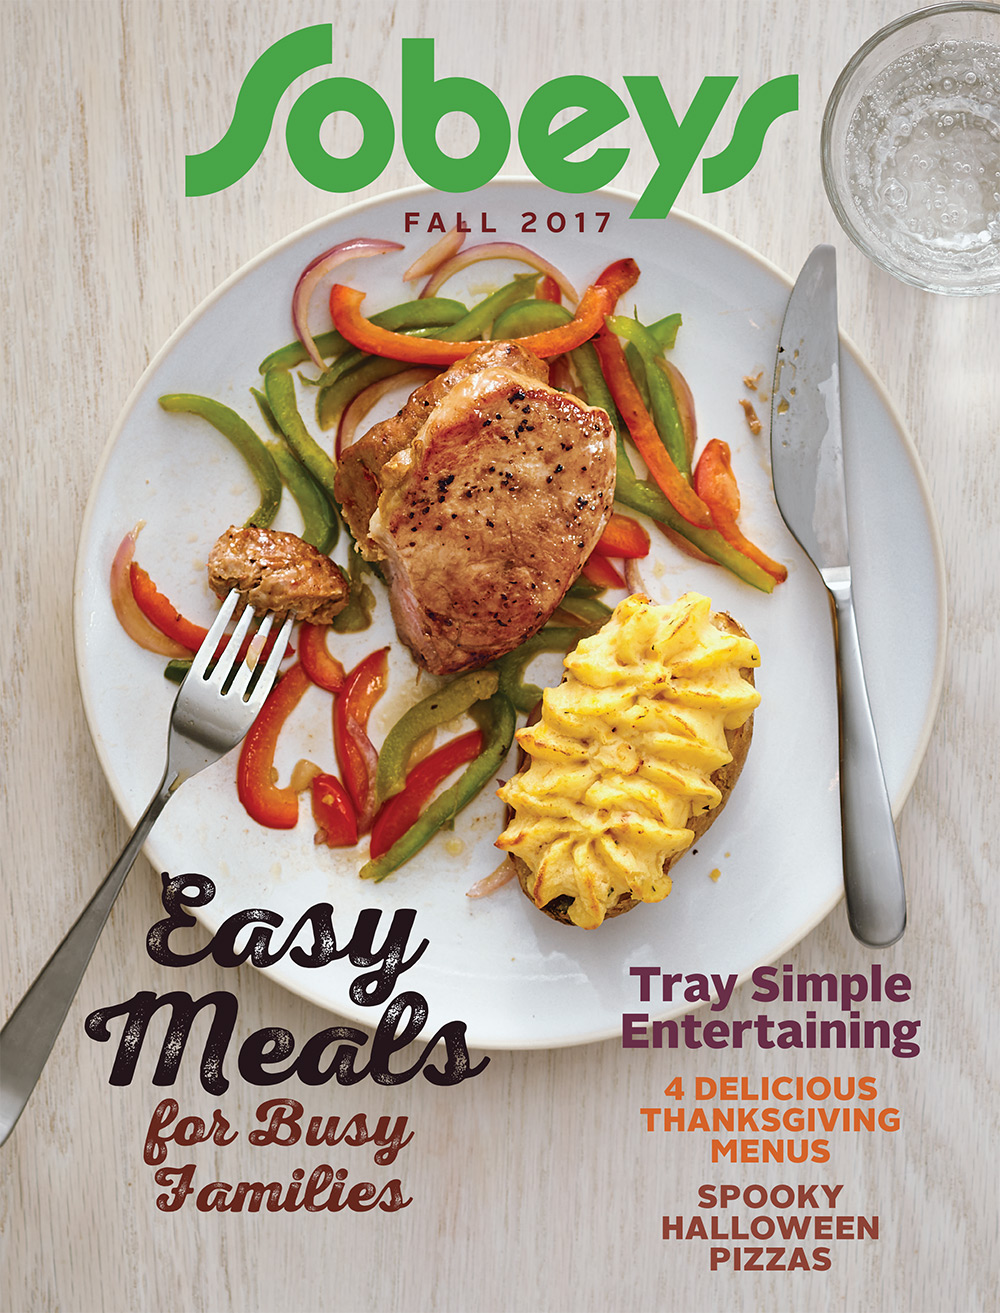 Sobeys - Fall magazine cover